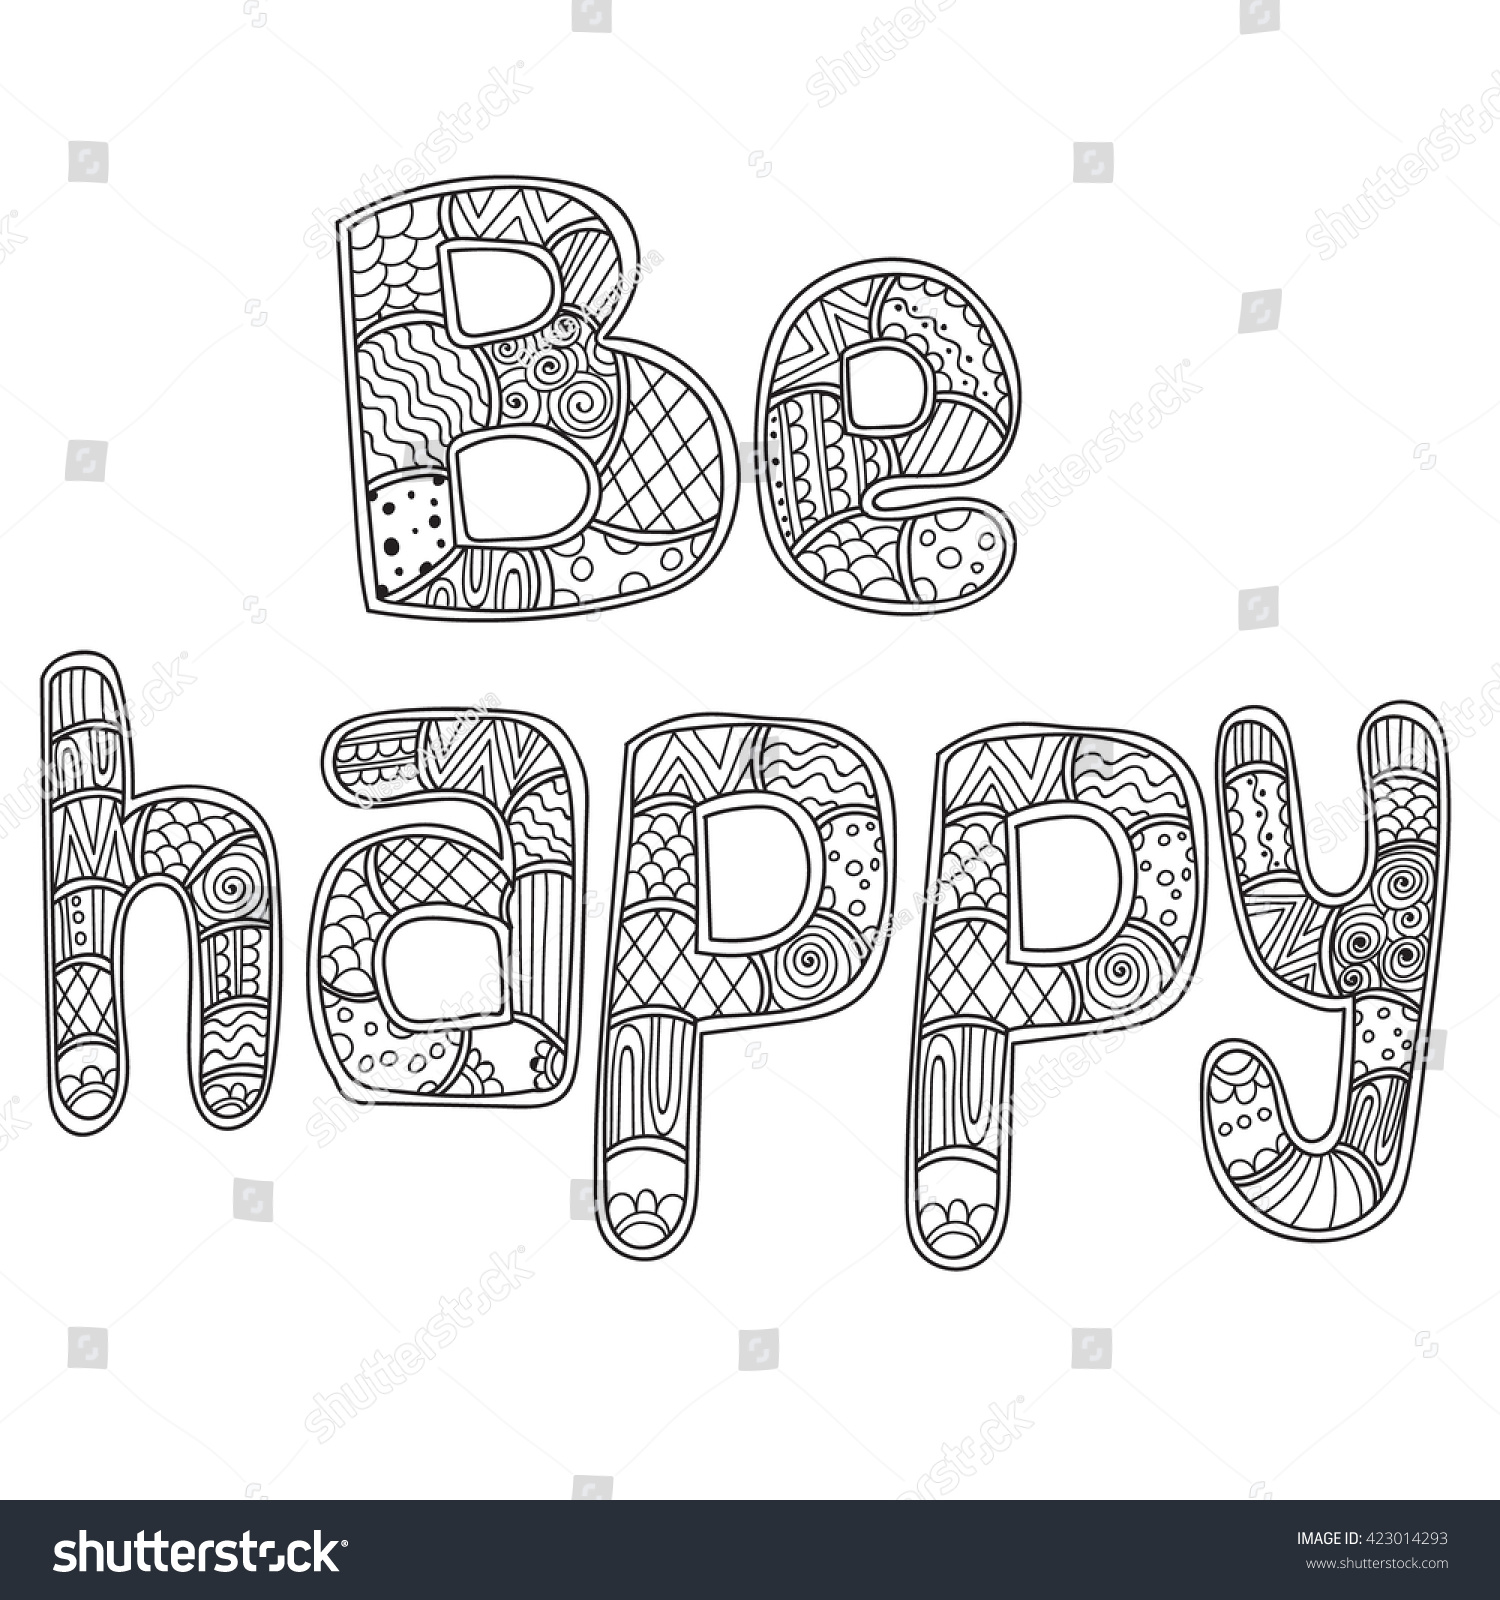 Coloring Pages For Adults Book LetteringWord Be Happy Zentangle Doodles Stylized